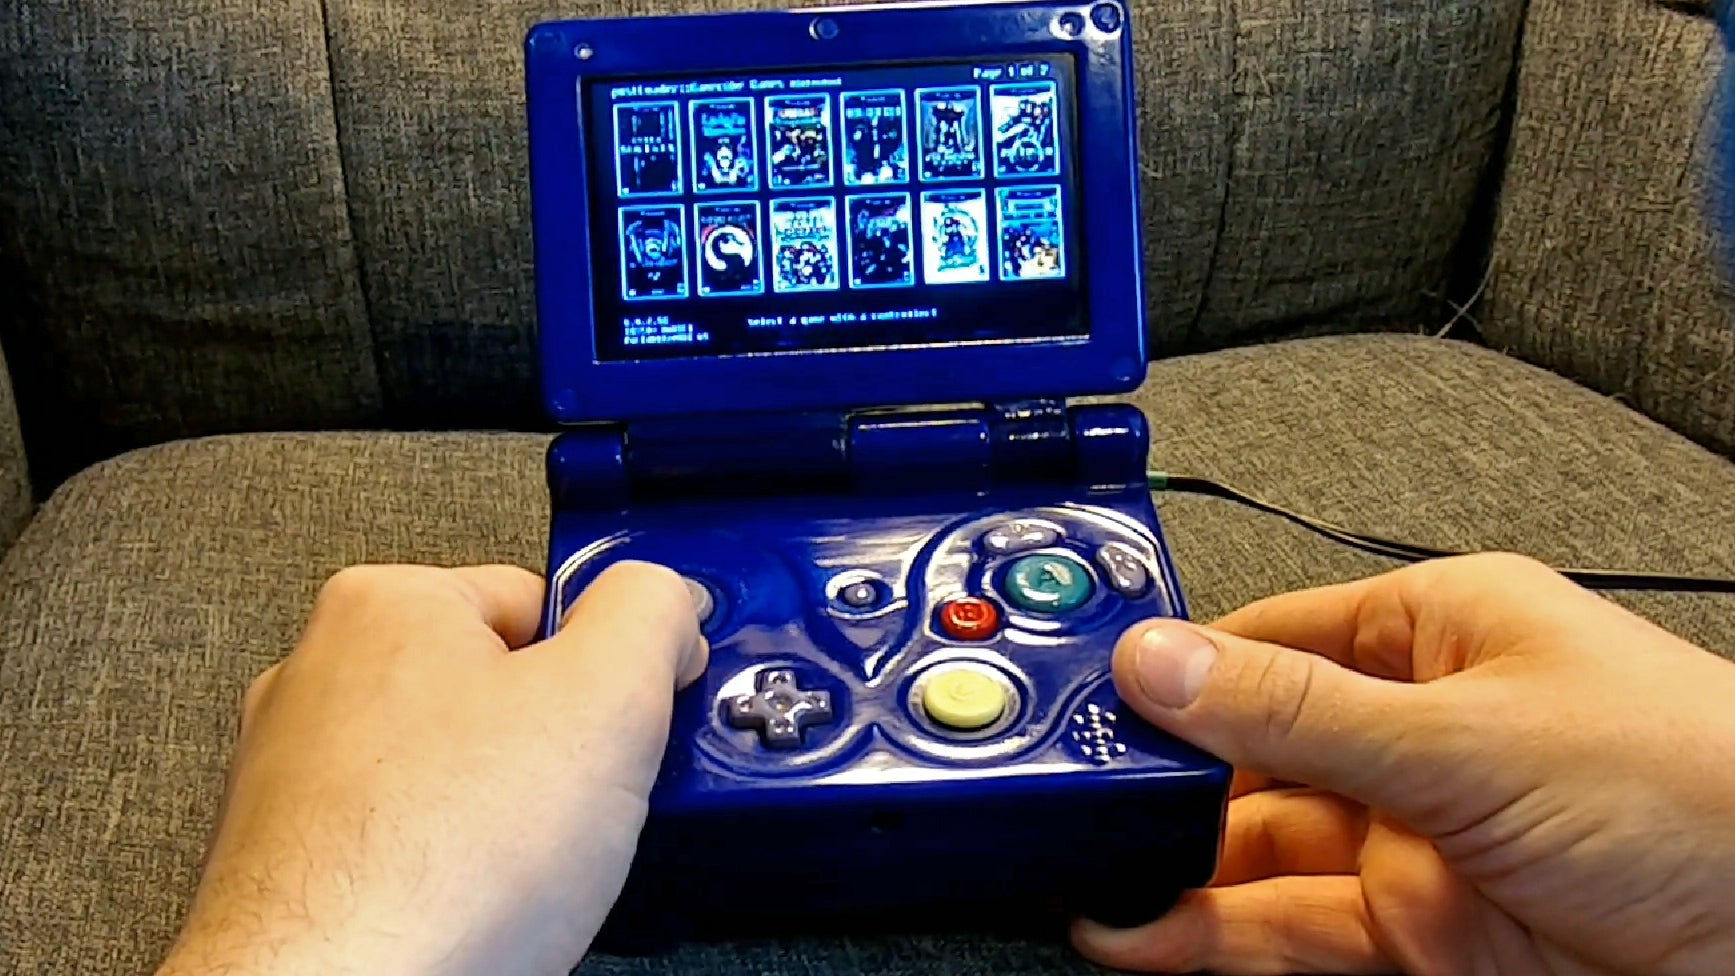 There's An Entire Nintendo Wii Packed Inside This Custom Jumbo Game Boy Advance